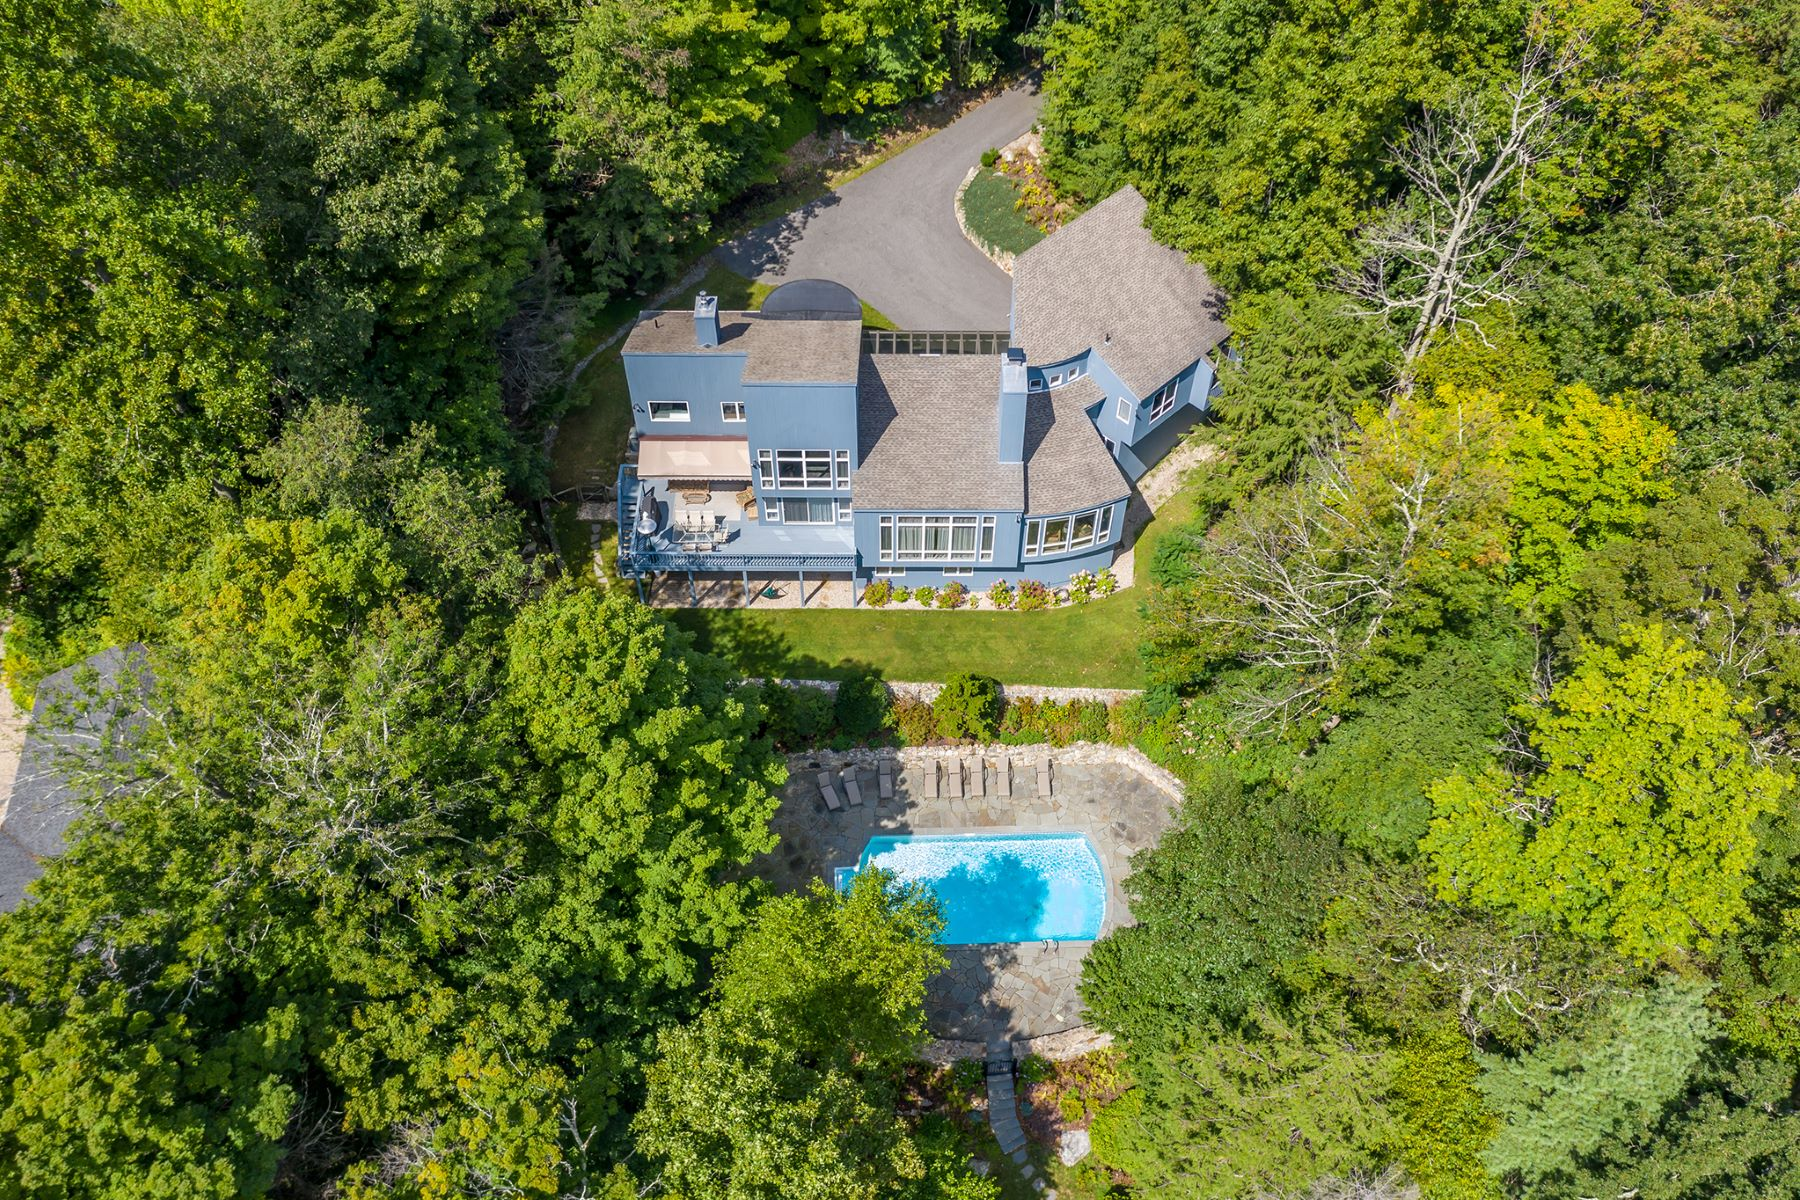 Single Family Homes for Active at ARCHITECTURAL MASTERPIECE ON WOODRIDGE LAKE 321 West Hyerdale Drive Goshen, Connecticut 06756 United States